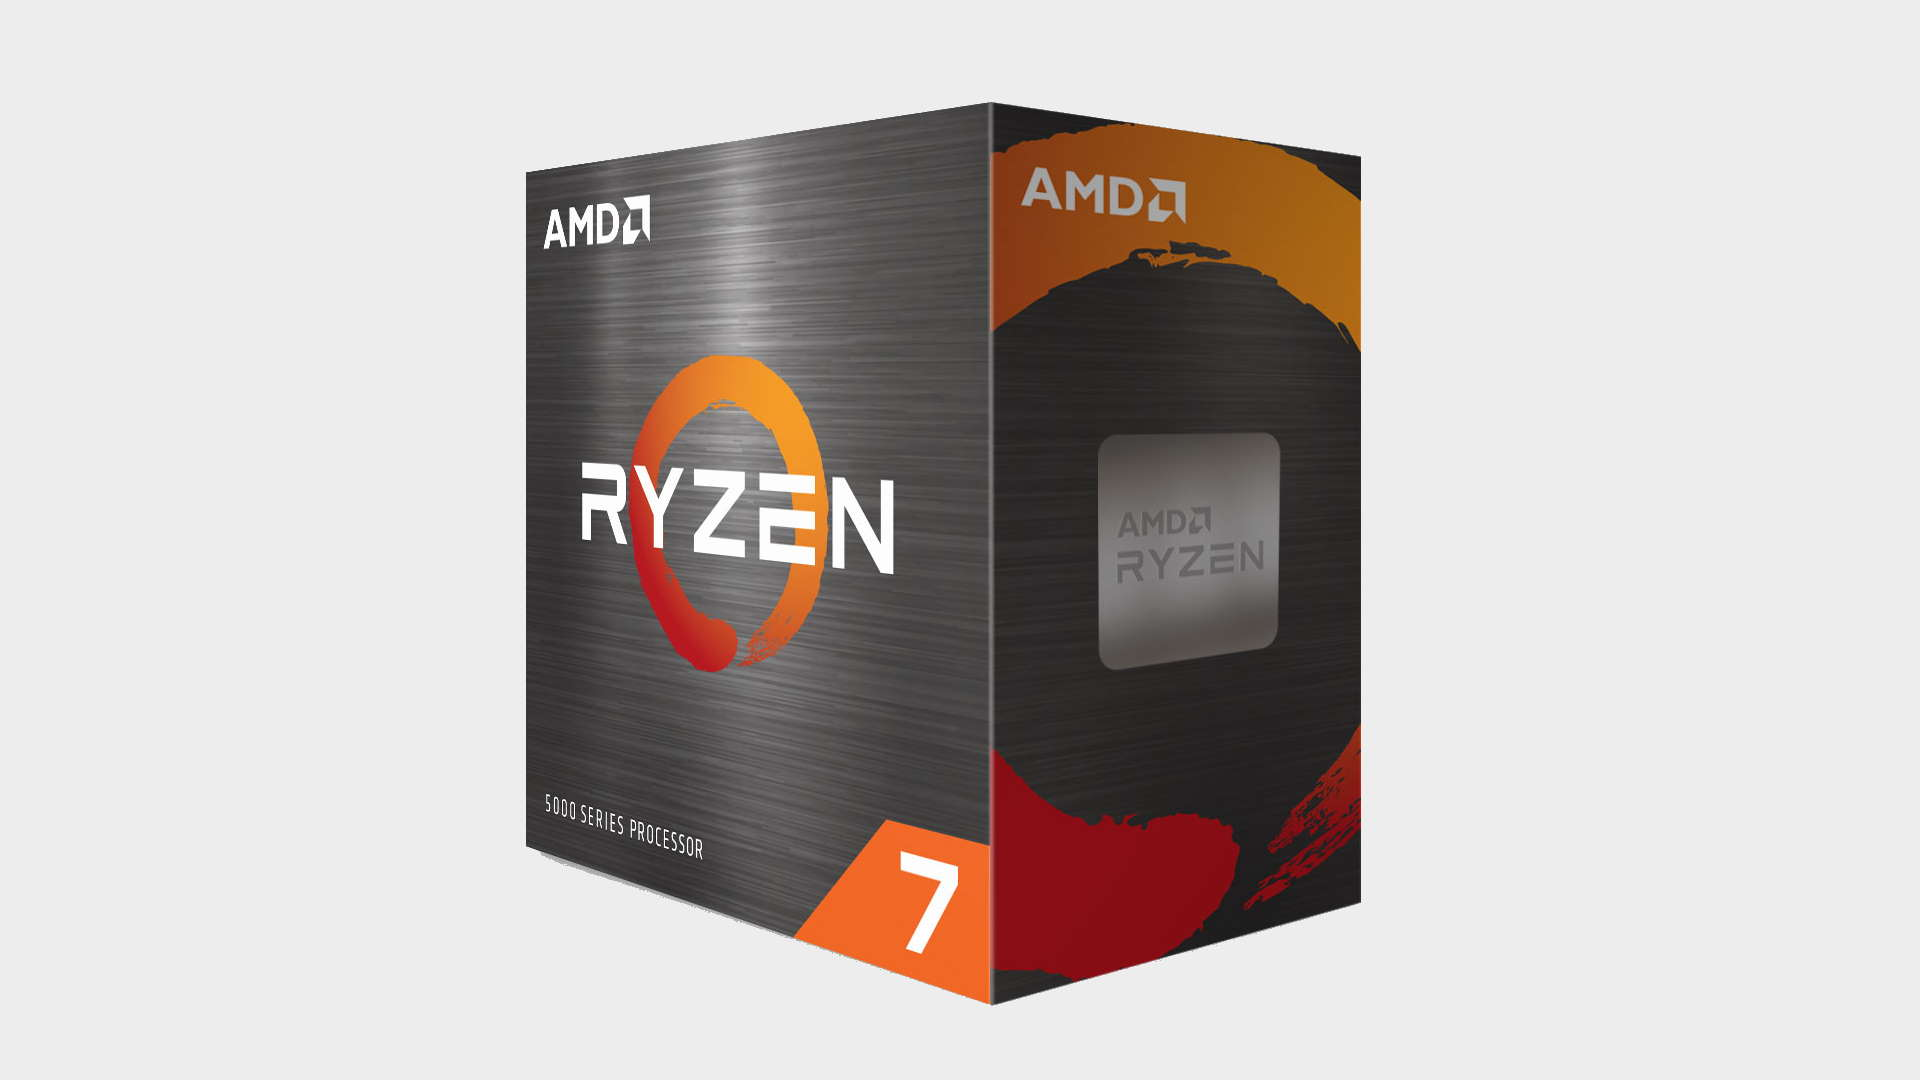 Best CPU deal today: the AMD Ryzen 7 5800X is just £420 right now